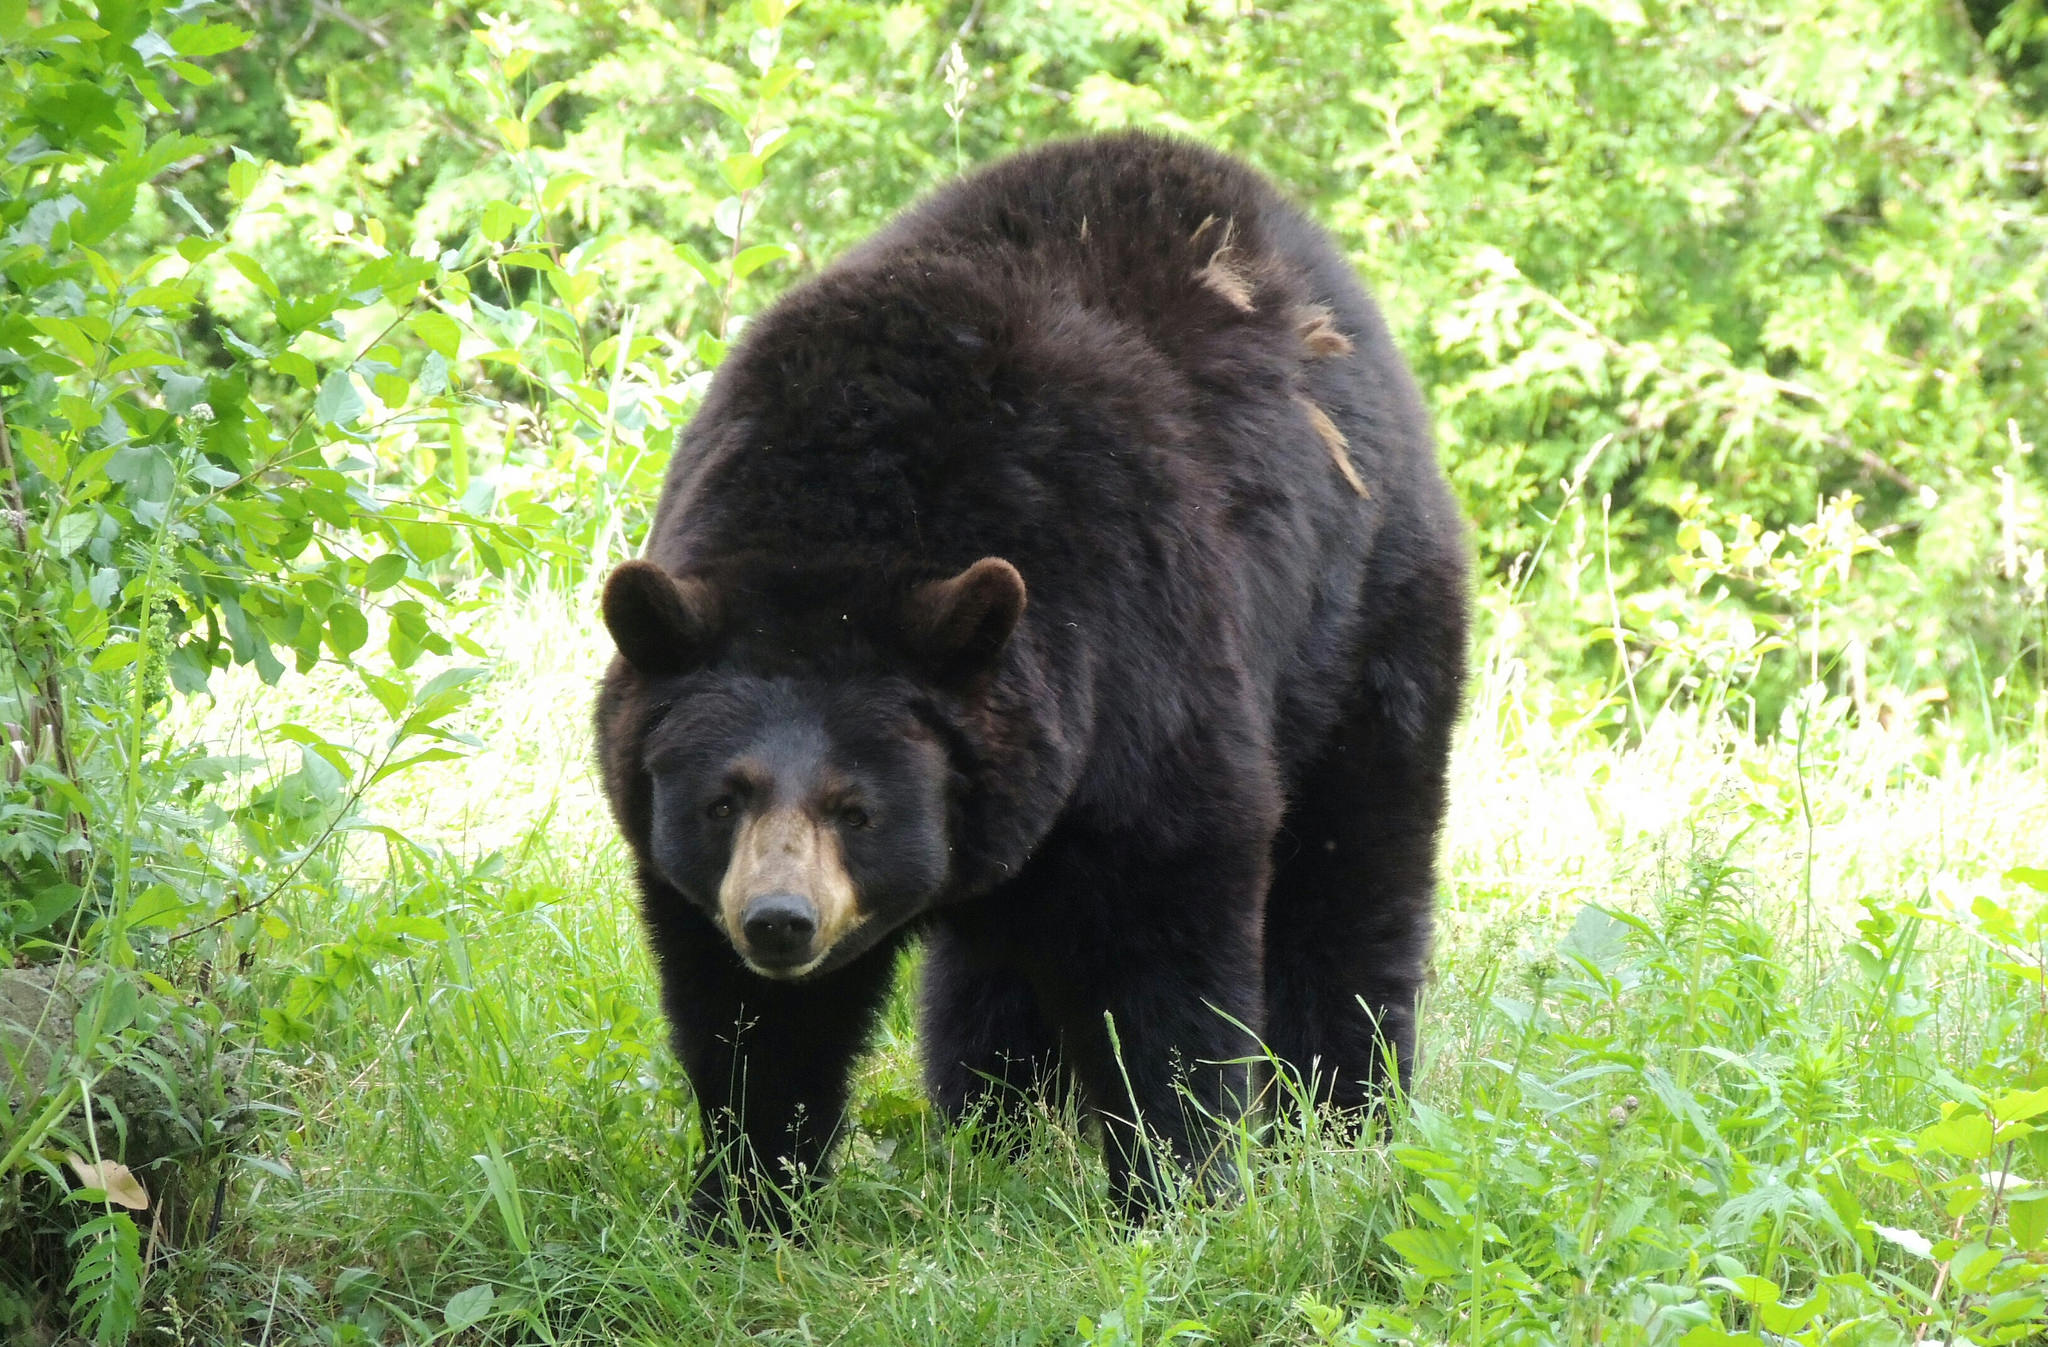 5 Ways to Avoid Being Eaten by Bears - The Trek